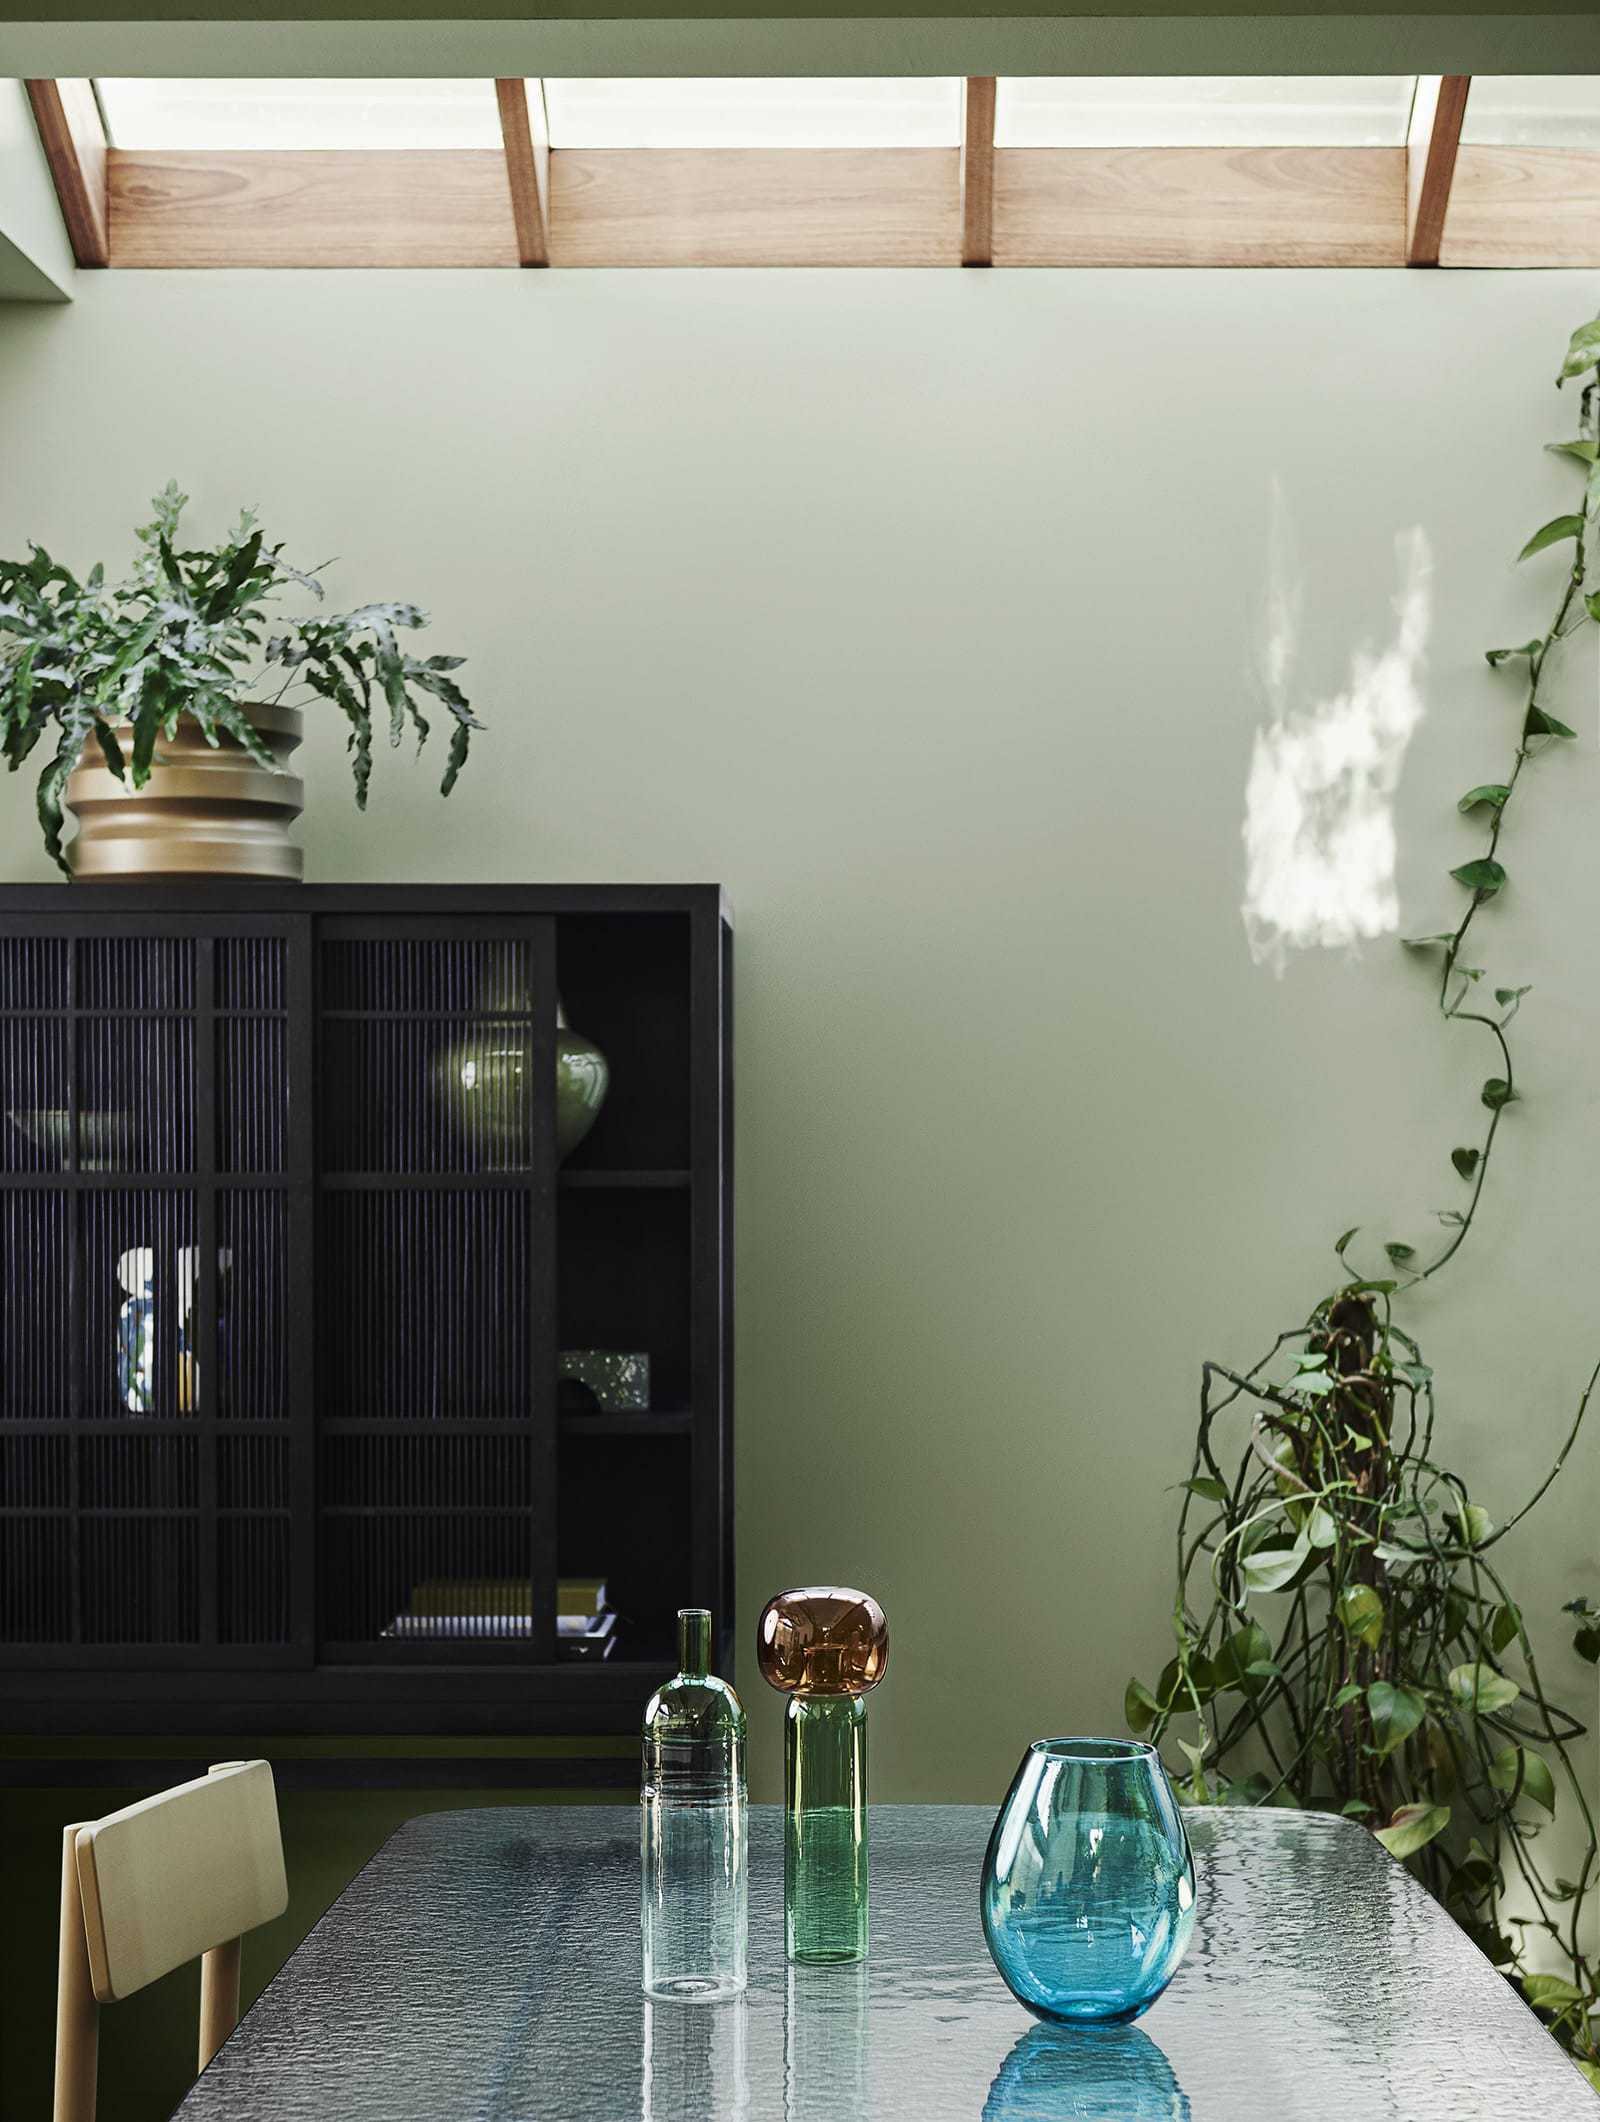 dulux light green paint feature wall in dining room with black storage unit